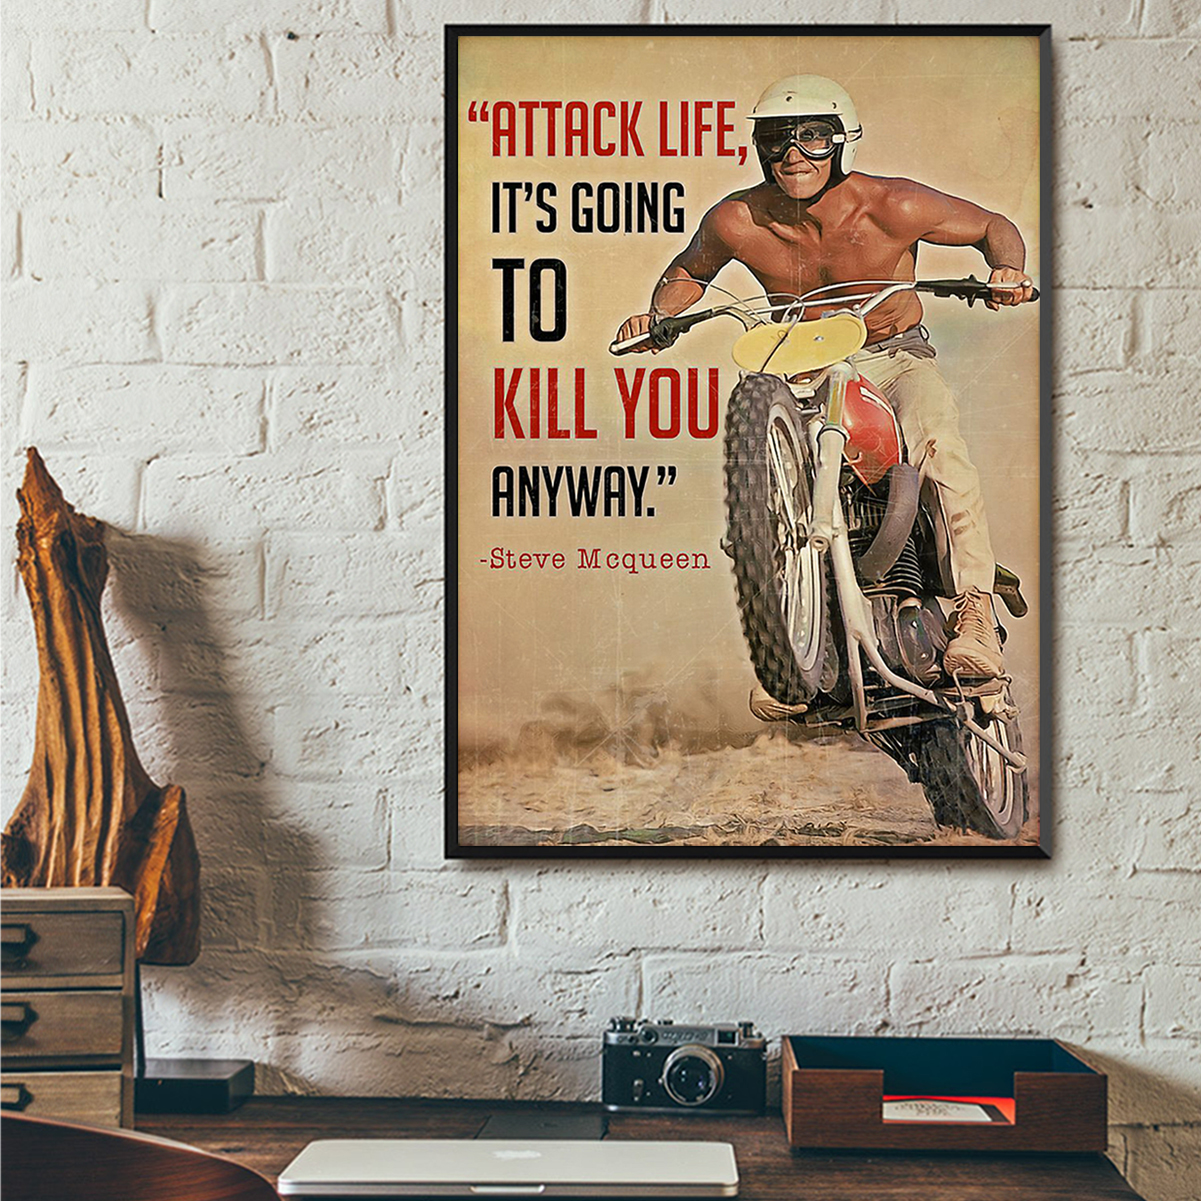 Steve mqueen attack life it's going to kill you anyway poster A3